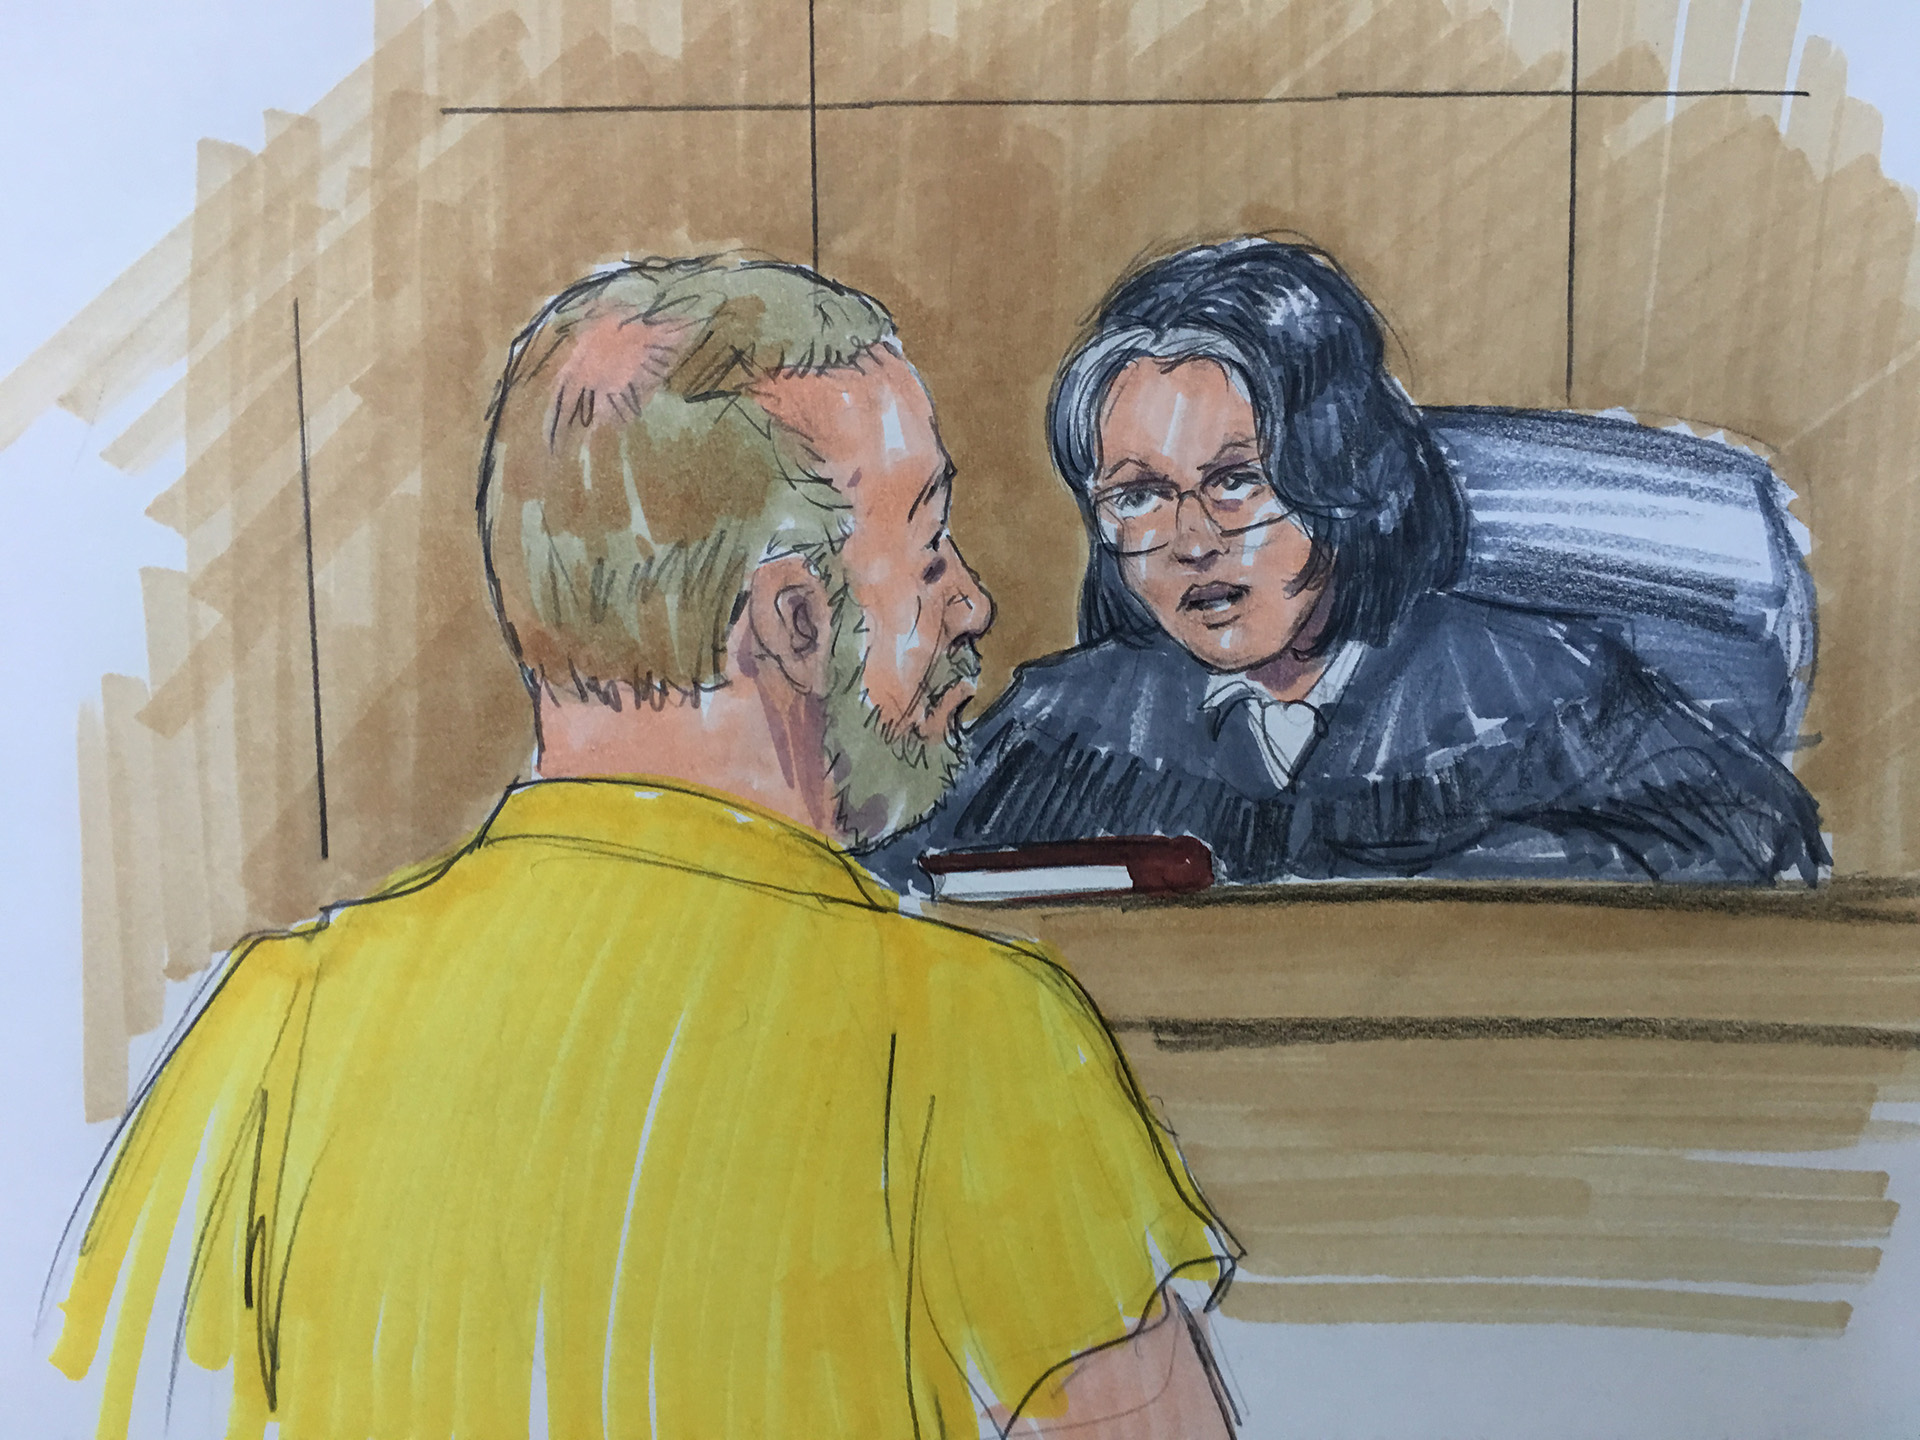 Andrew Warren entered not guilty pleas on six first-degree murder charges Thursday. (Courtroom sketch by Thomas Gianni)